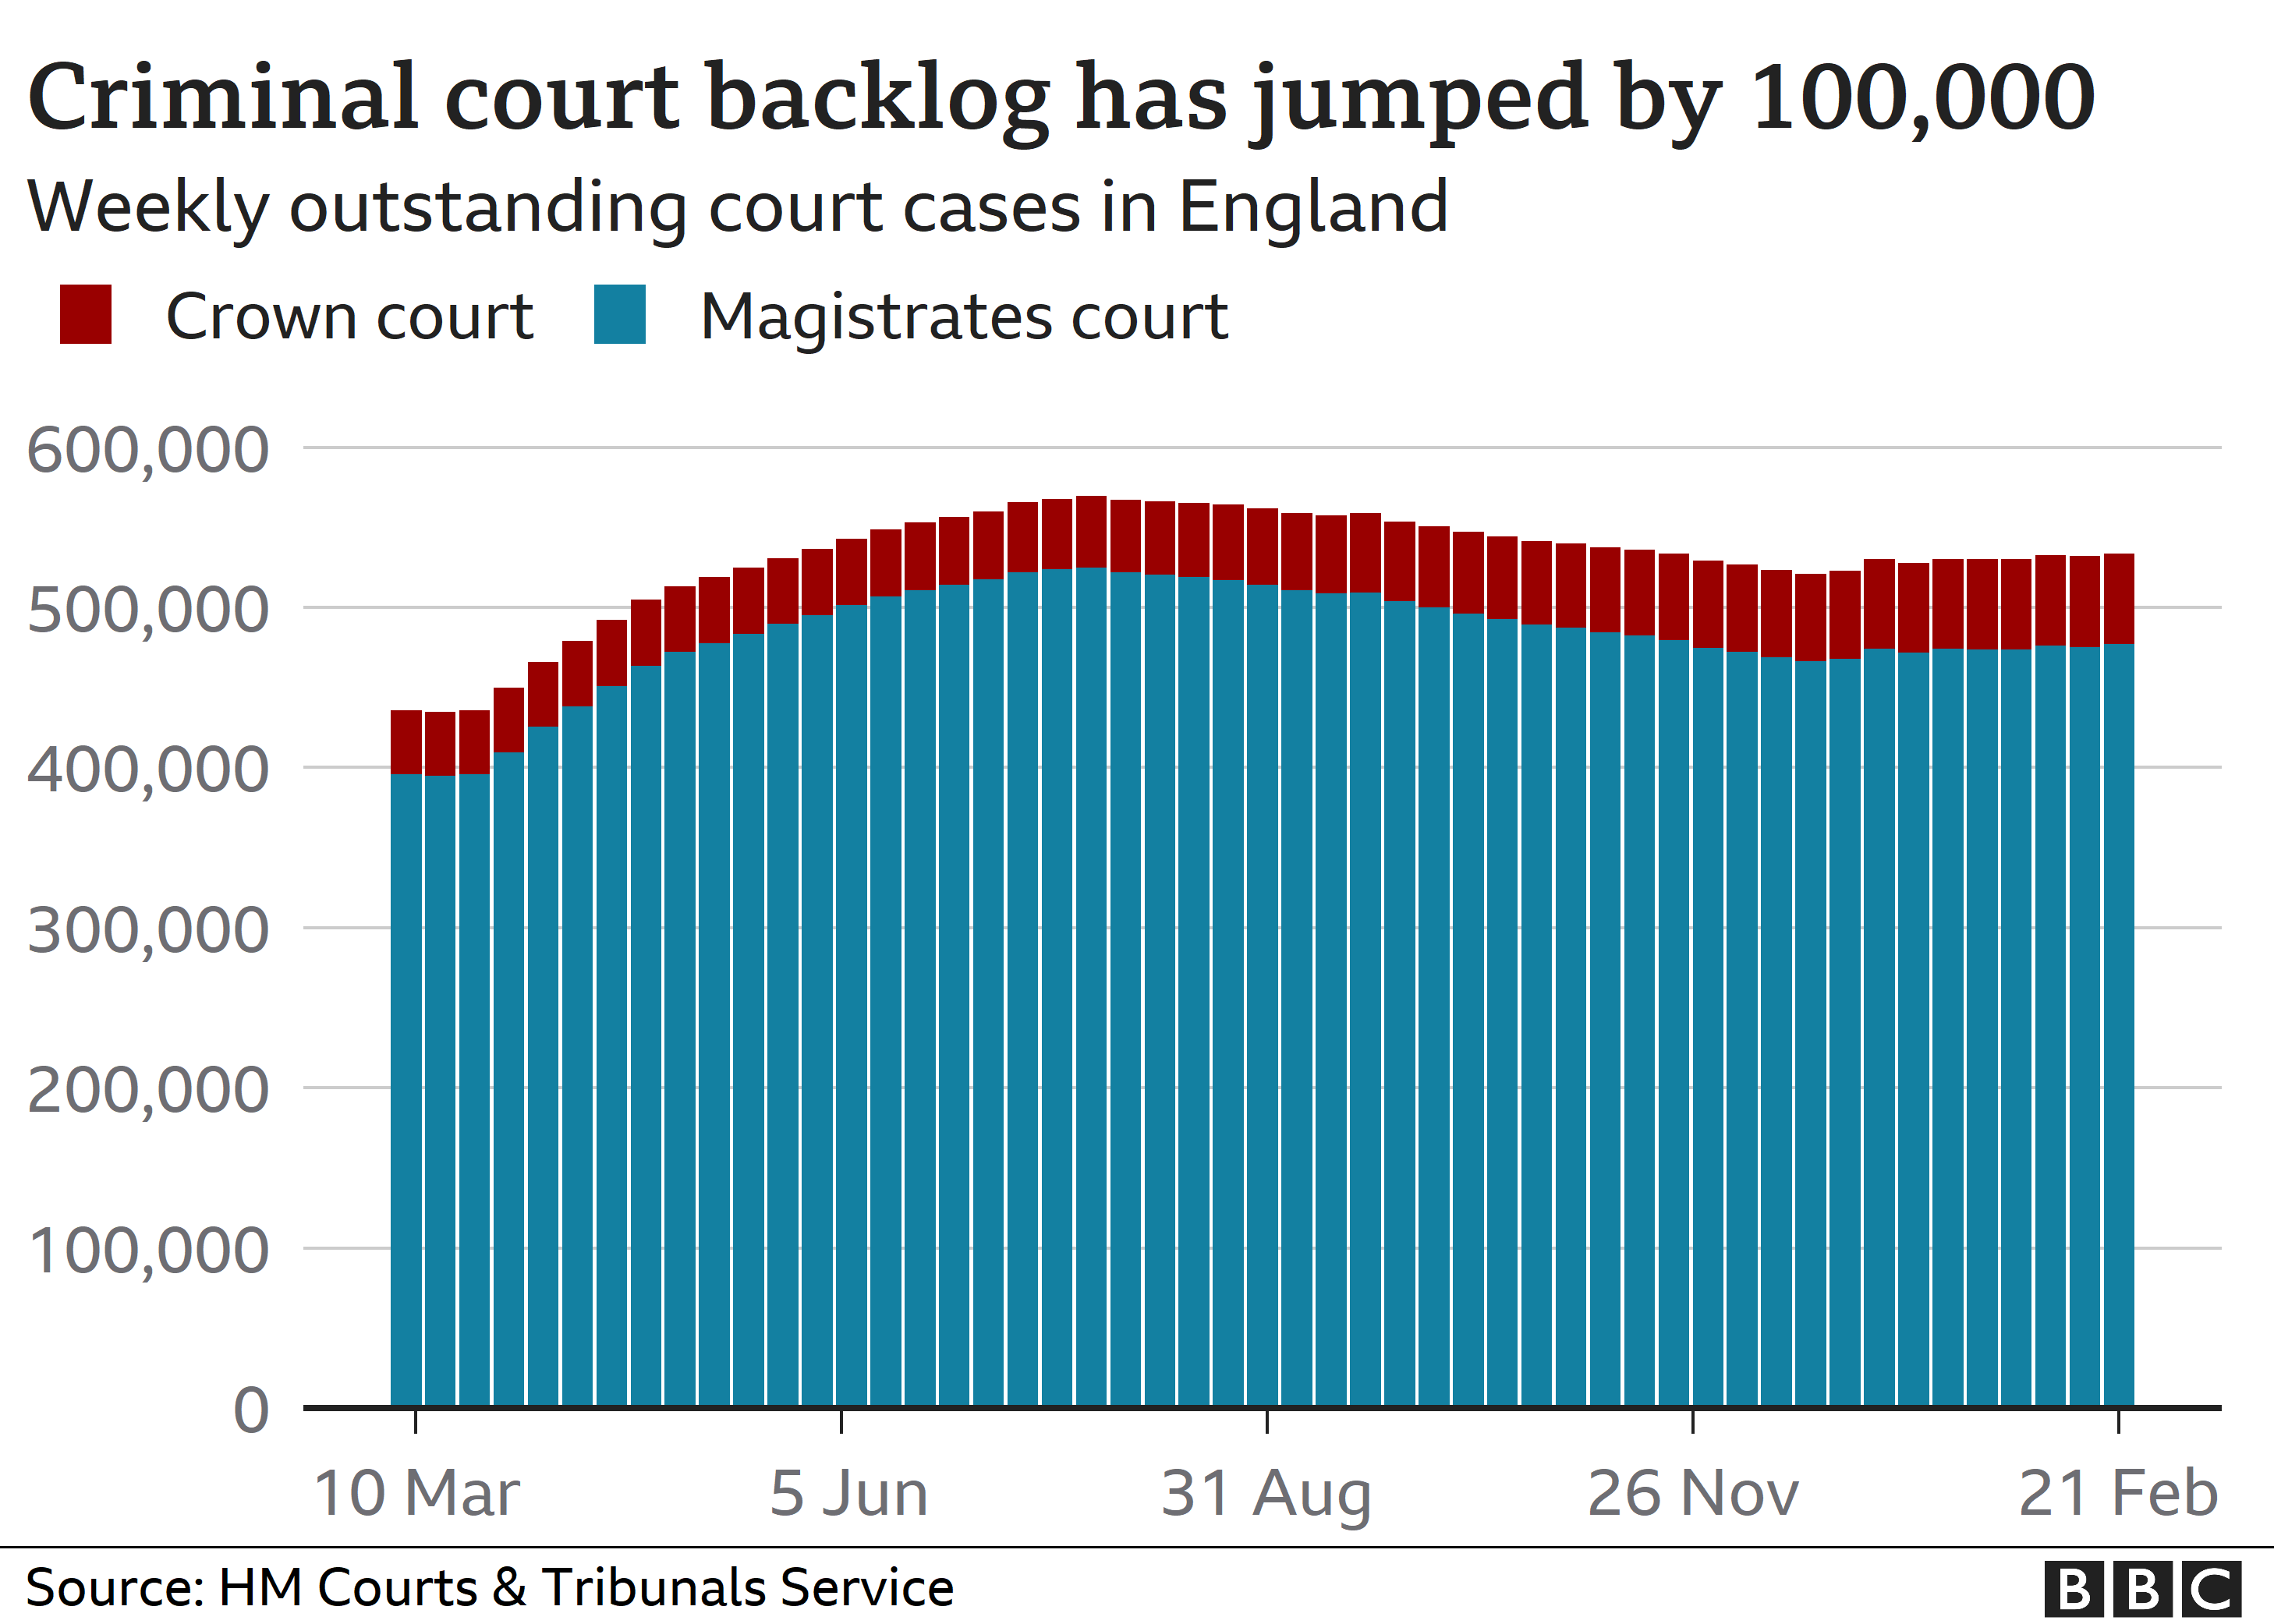 Chart showing backlog in criminal court